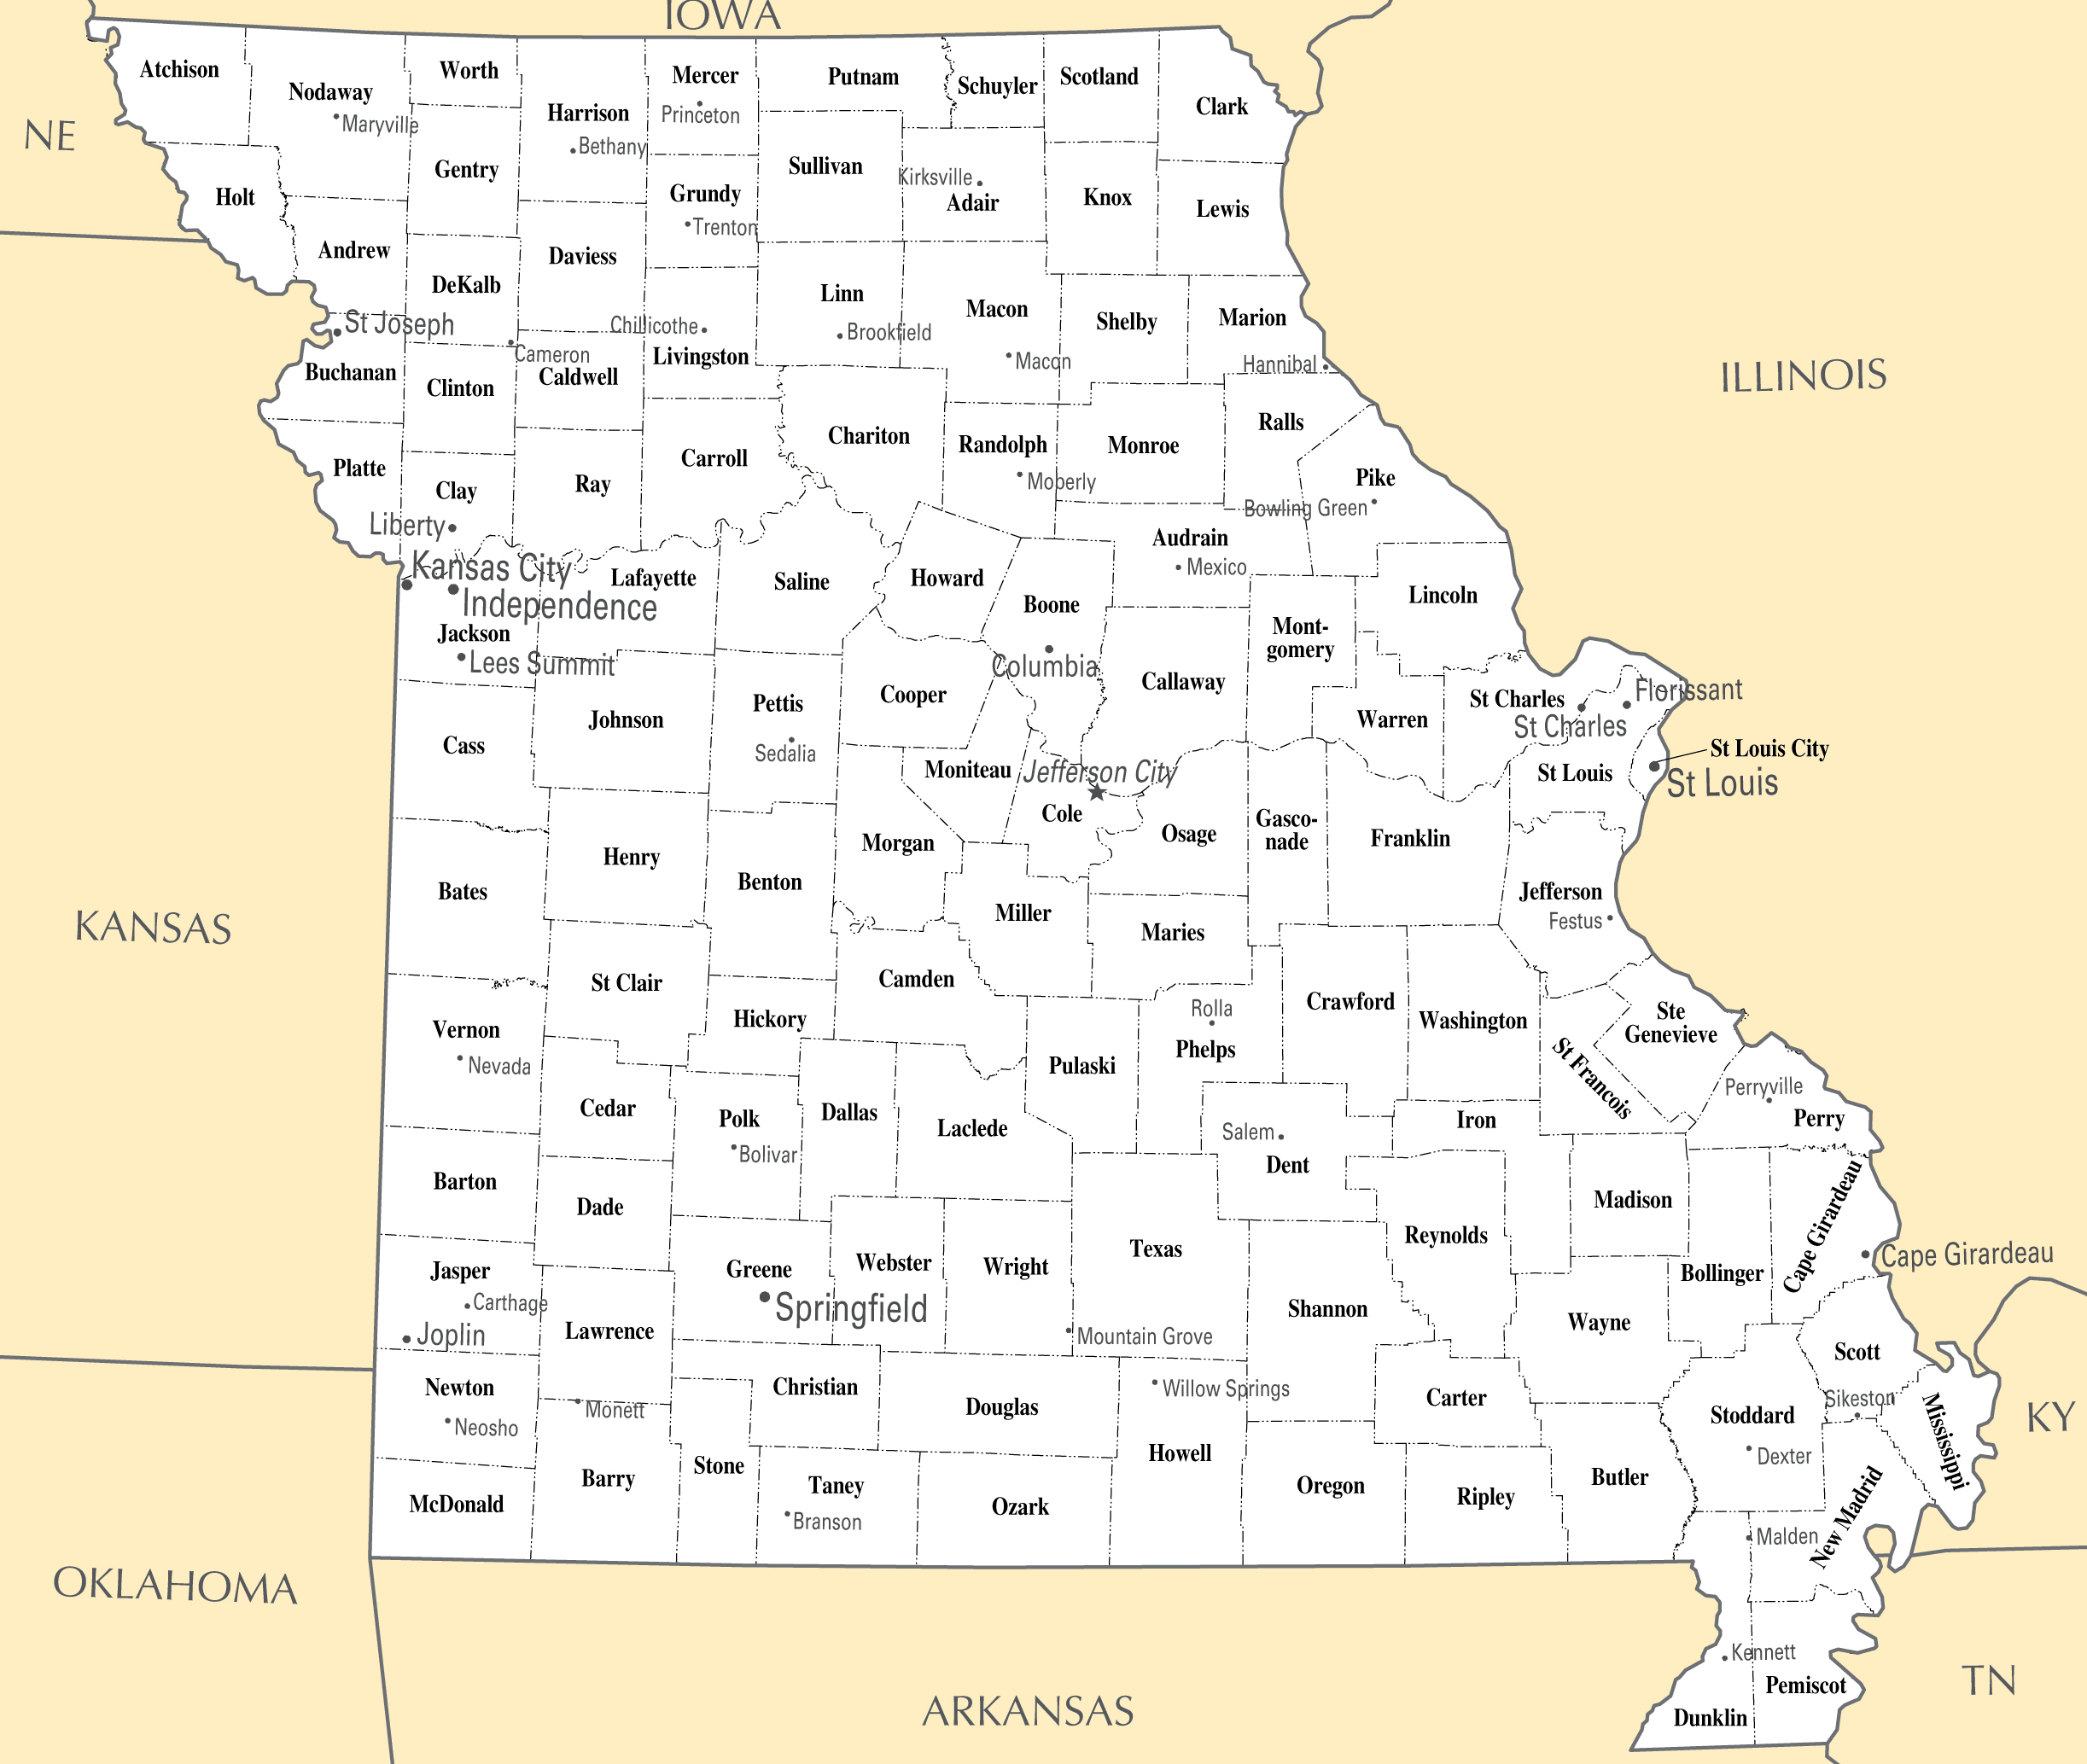 Large Administrative Map Of Missouri State Missouri State USA - Missouri usa map